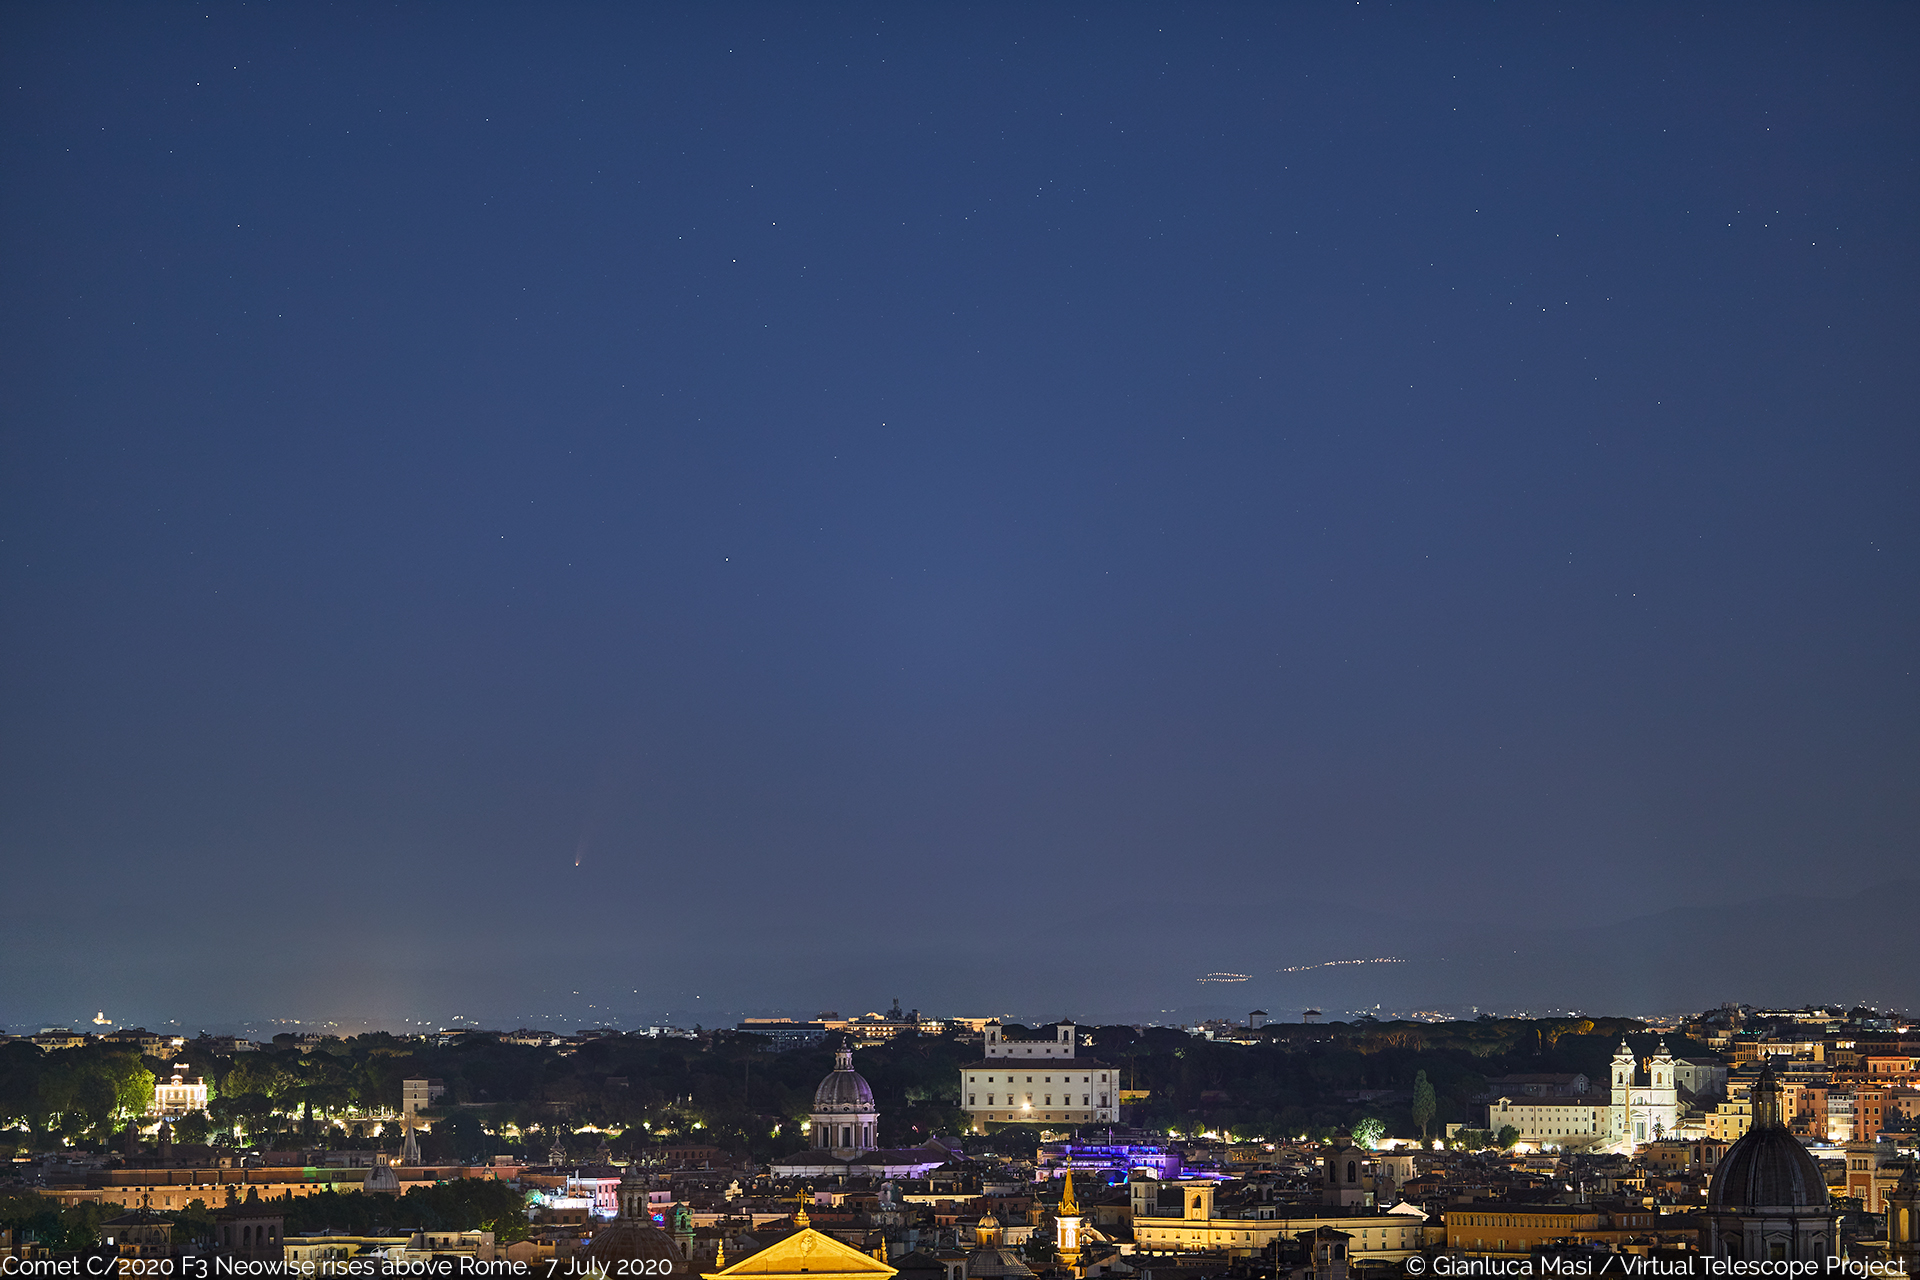 Comet C/2020 F3 Neowise rises above Rome - 7 July 2020.